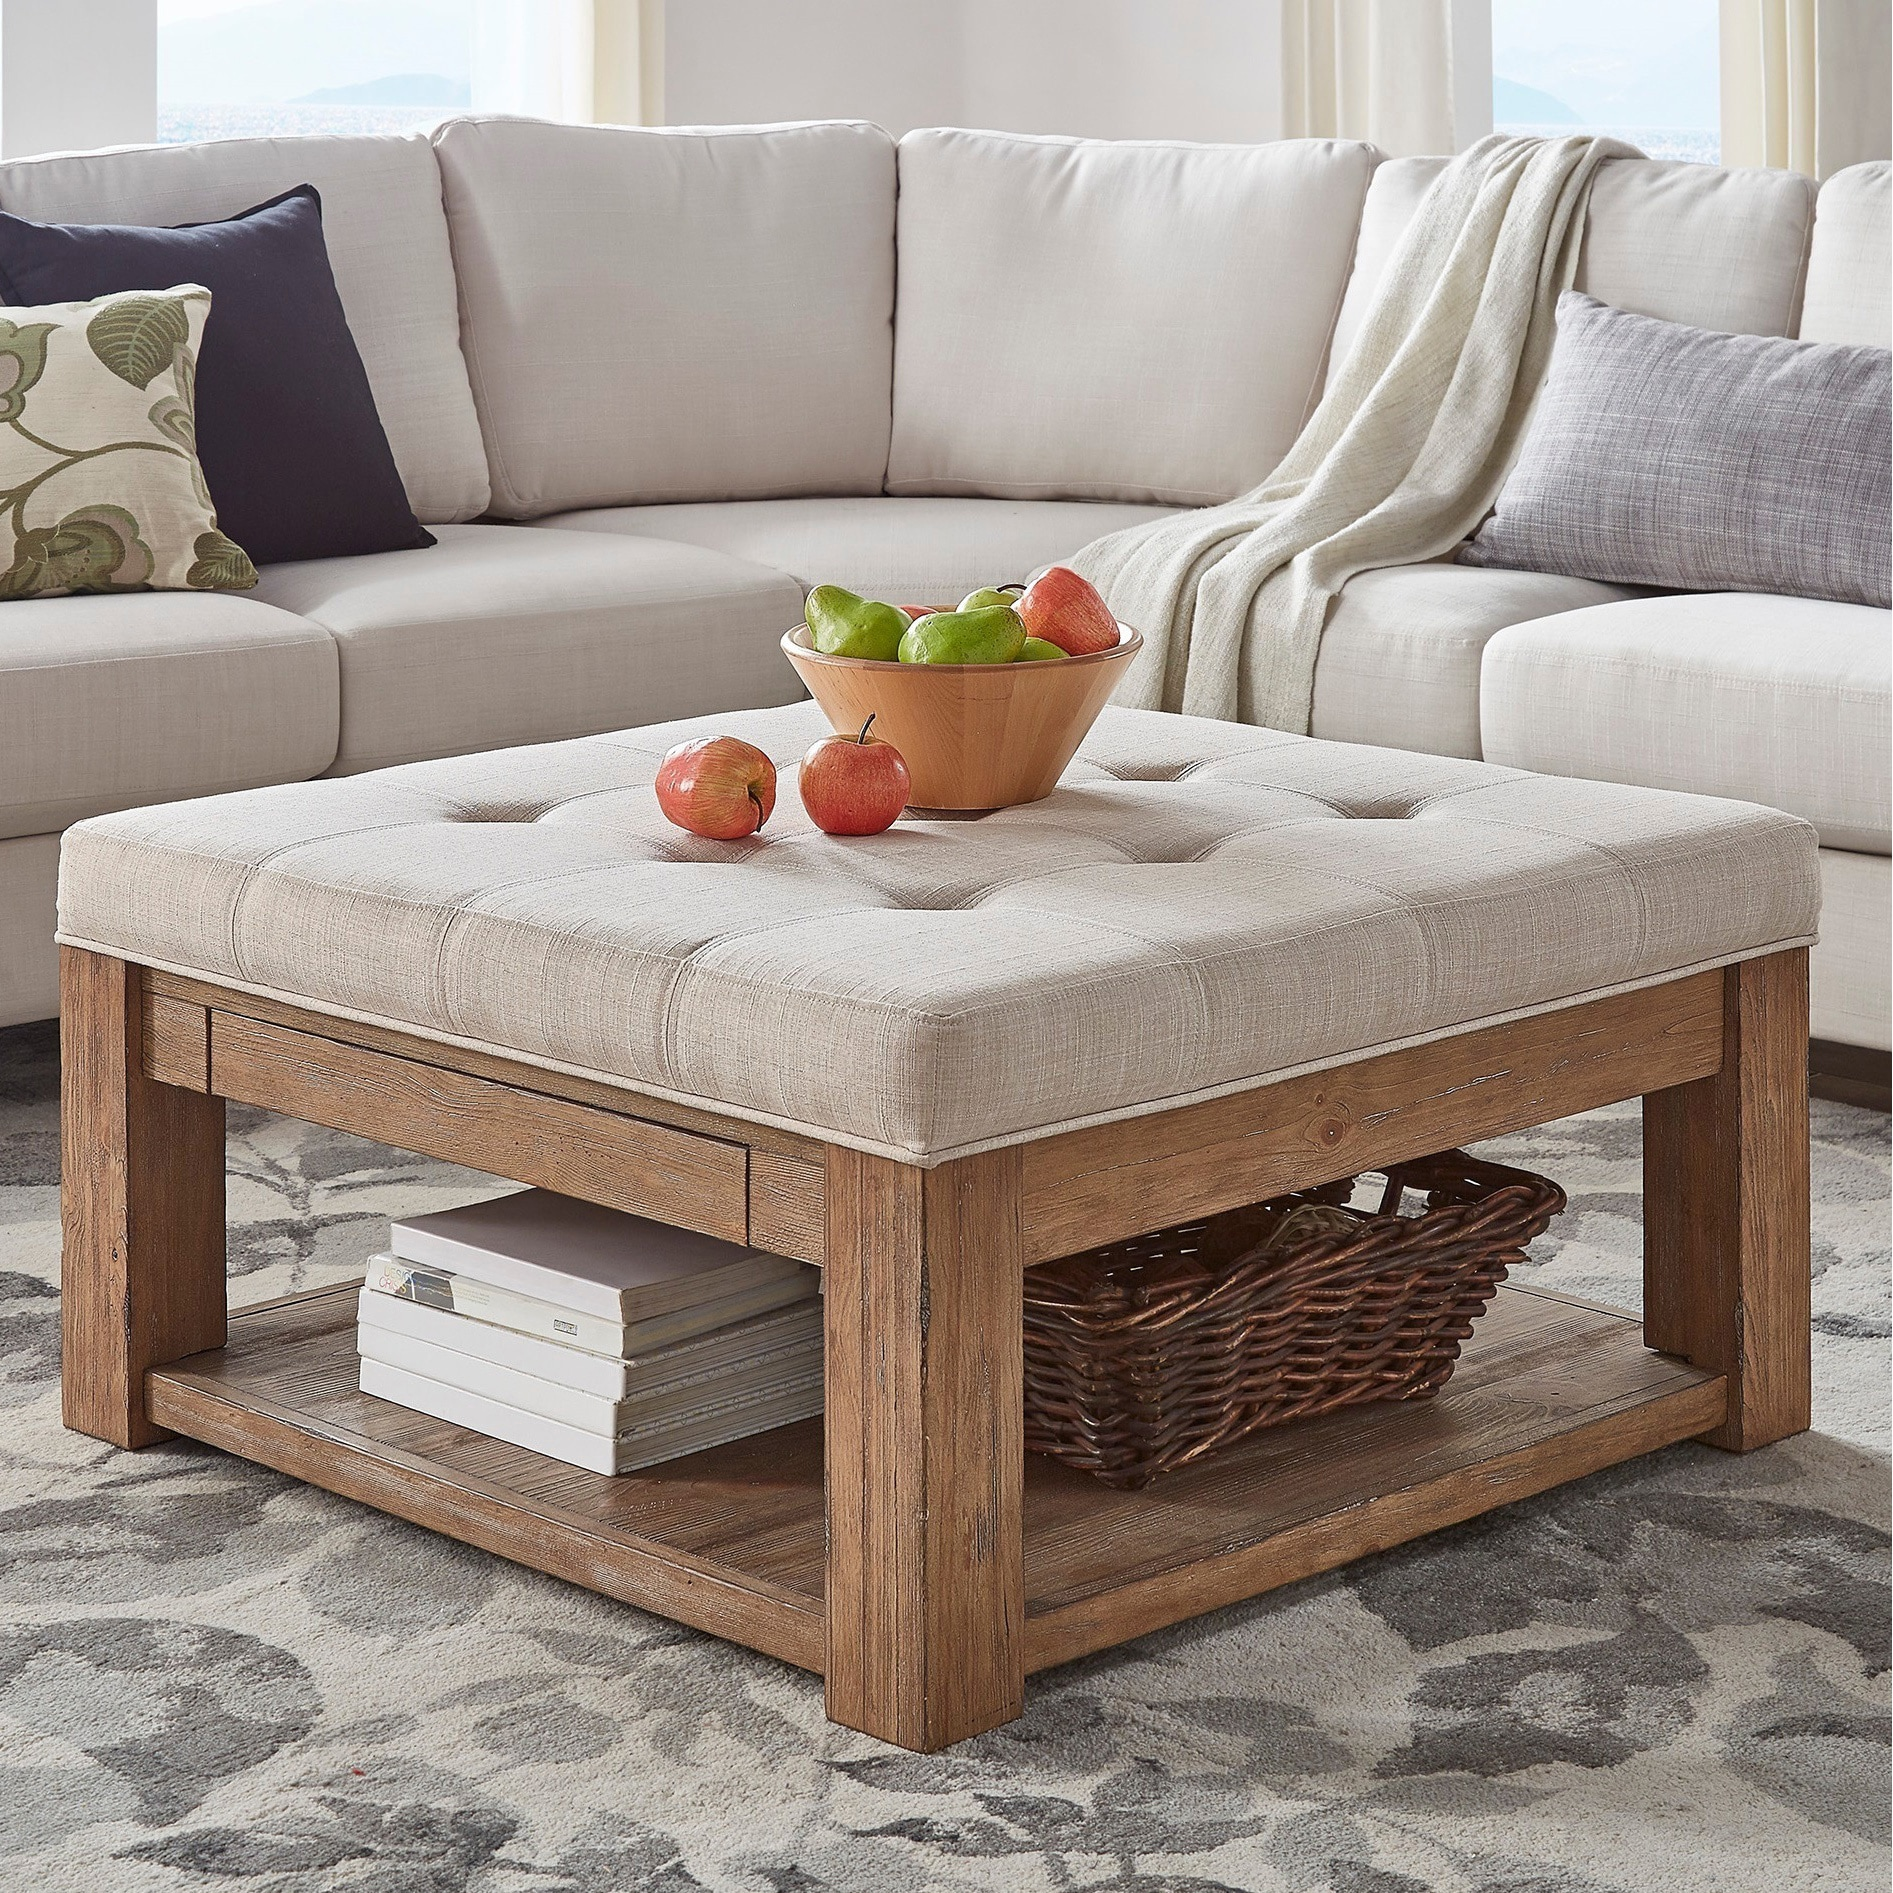 Super Lennon Pine Square Storage Ottoman Coffee Table By Inspire Q Artisan Caraccident5 Cool Chair Designs And Ideas Caraccident5Info